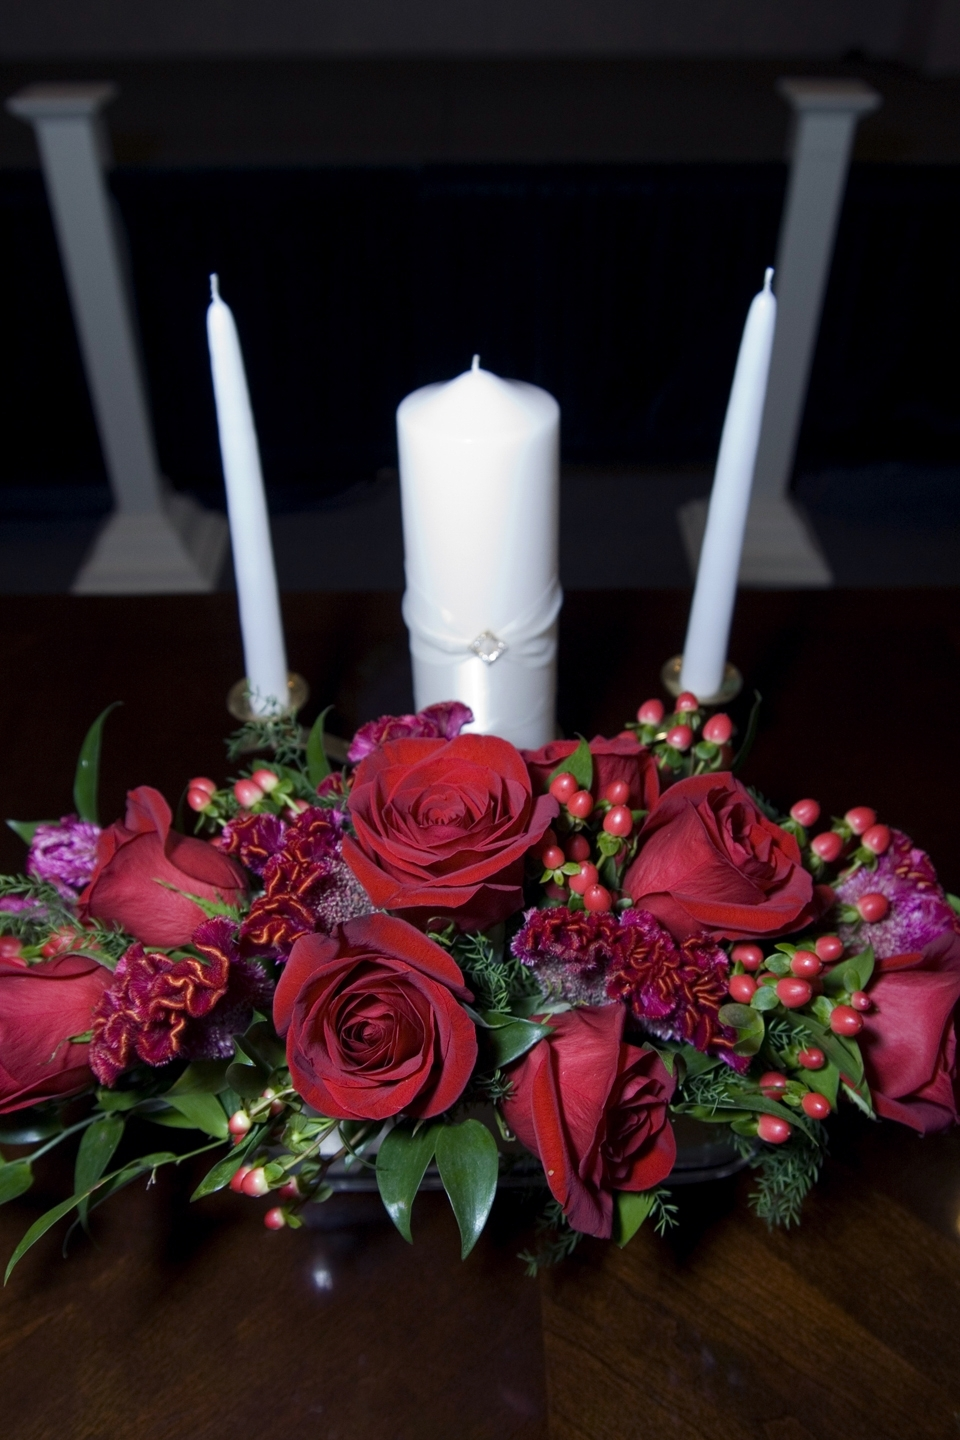 Ceremony, Flowers & Decor, red, Ceremony Flowers, Flowers, Roses, Unity candle